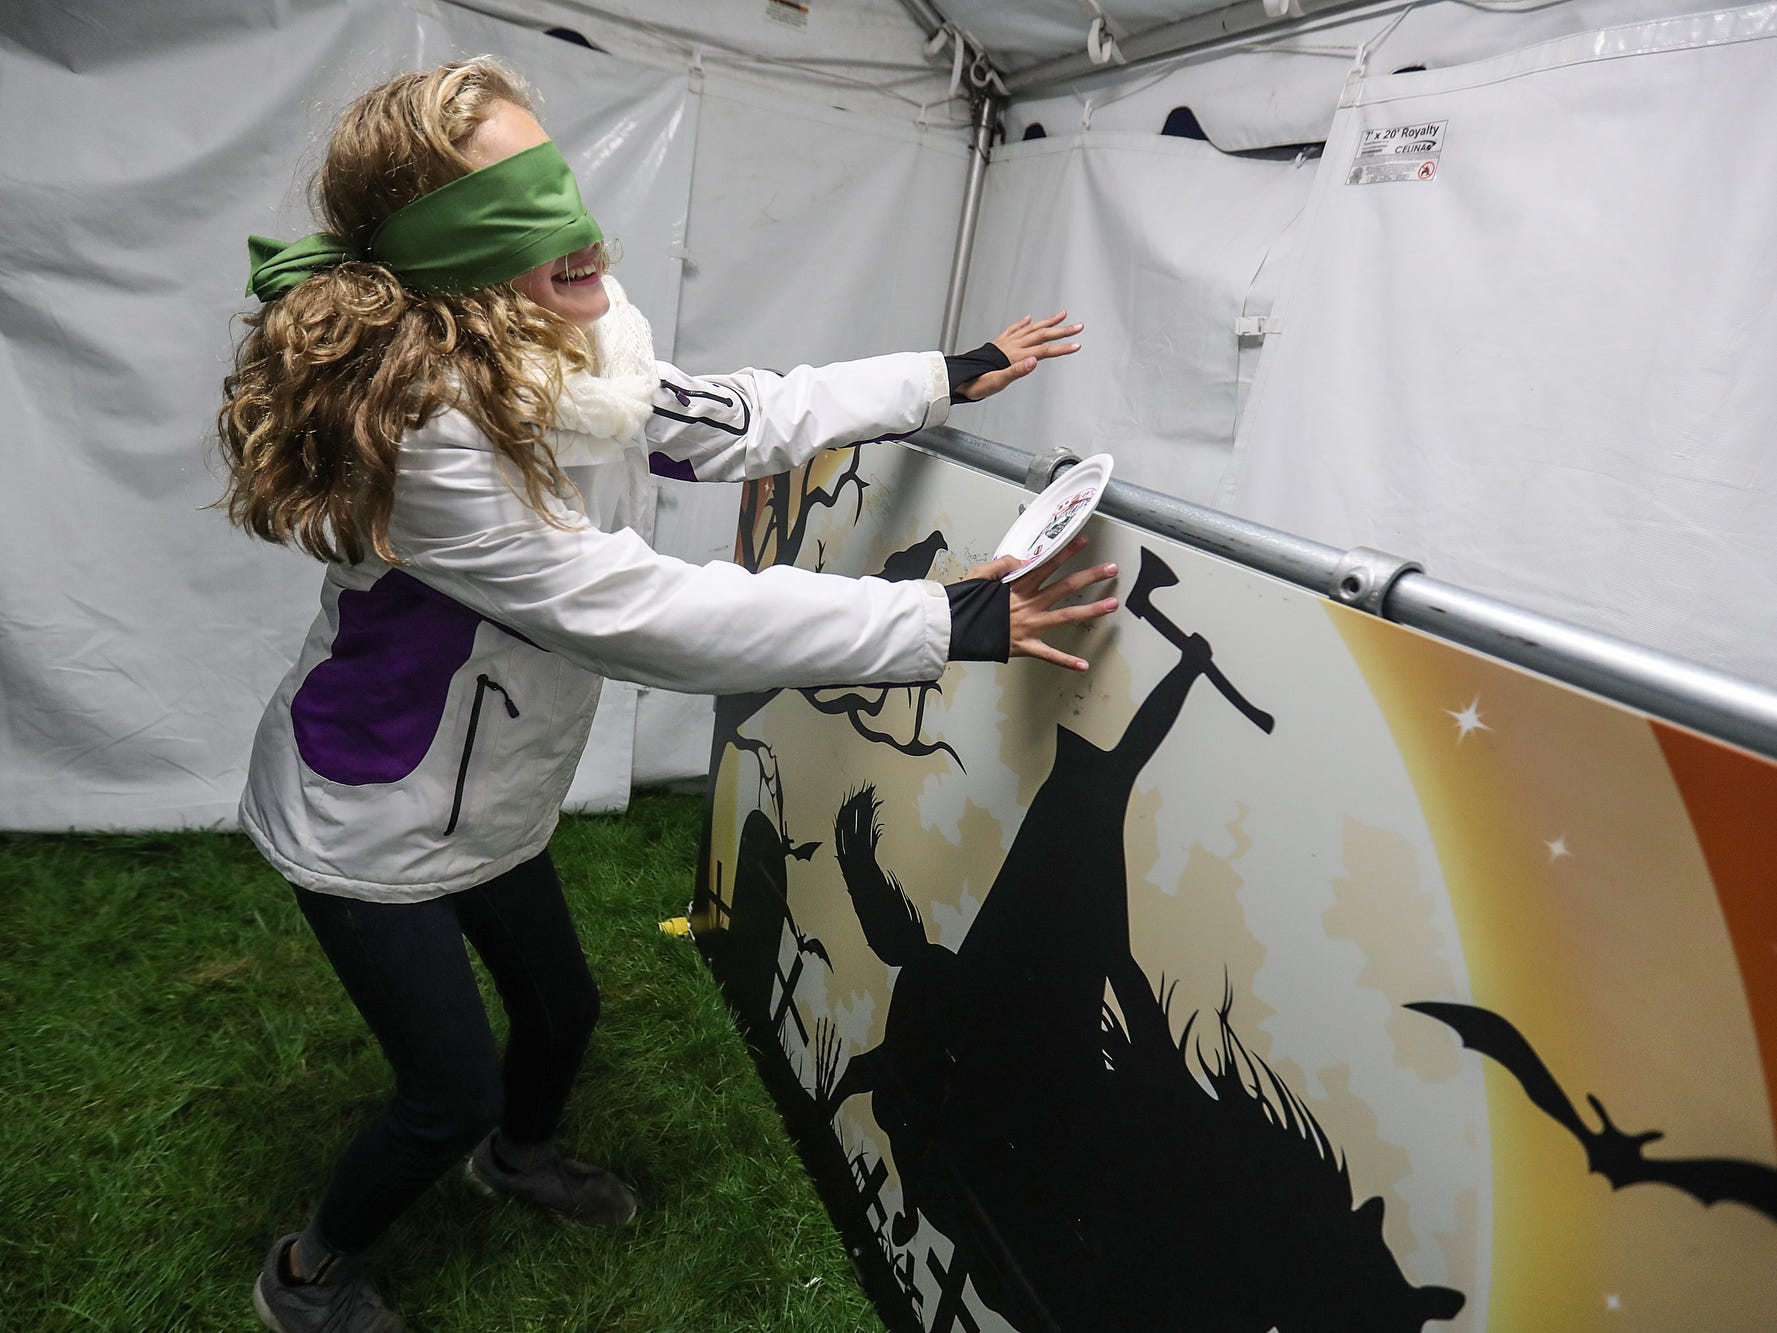 """Sydney Rohls, 11, laughs as she tries to """"pin the head on the horseman"""" on opening night of the annual Headless Horseman Halloween festival at Conner Prairie in Fishers, Ind., Thursday, Oct. 11, 2018. The festival is held from 6 to 9 p.m. every Thursday through Sunday, ending Oct. 28, 2018."""